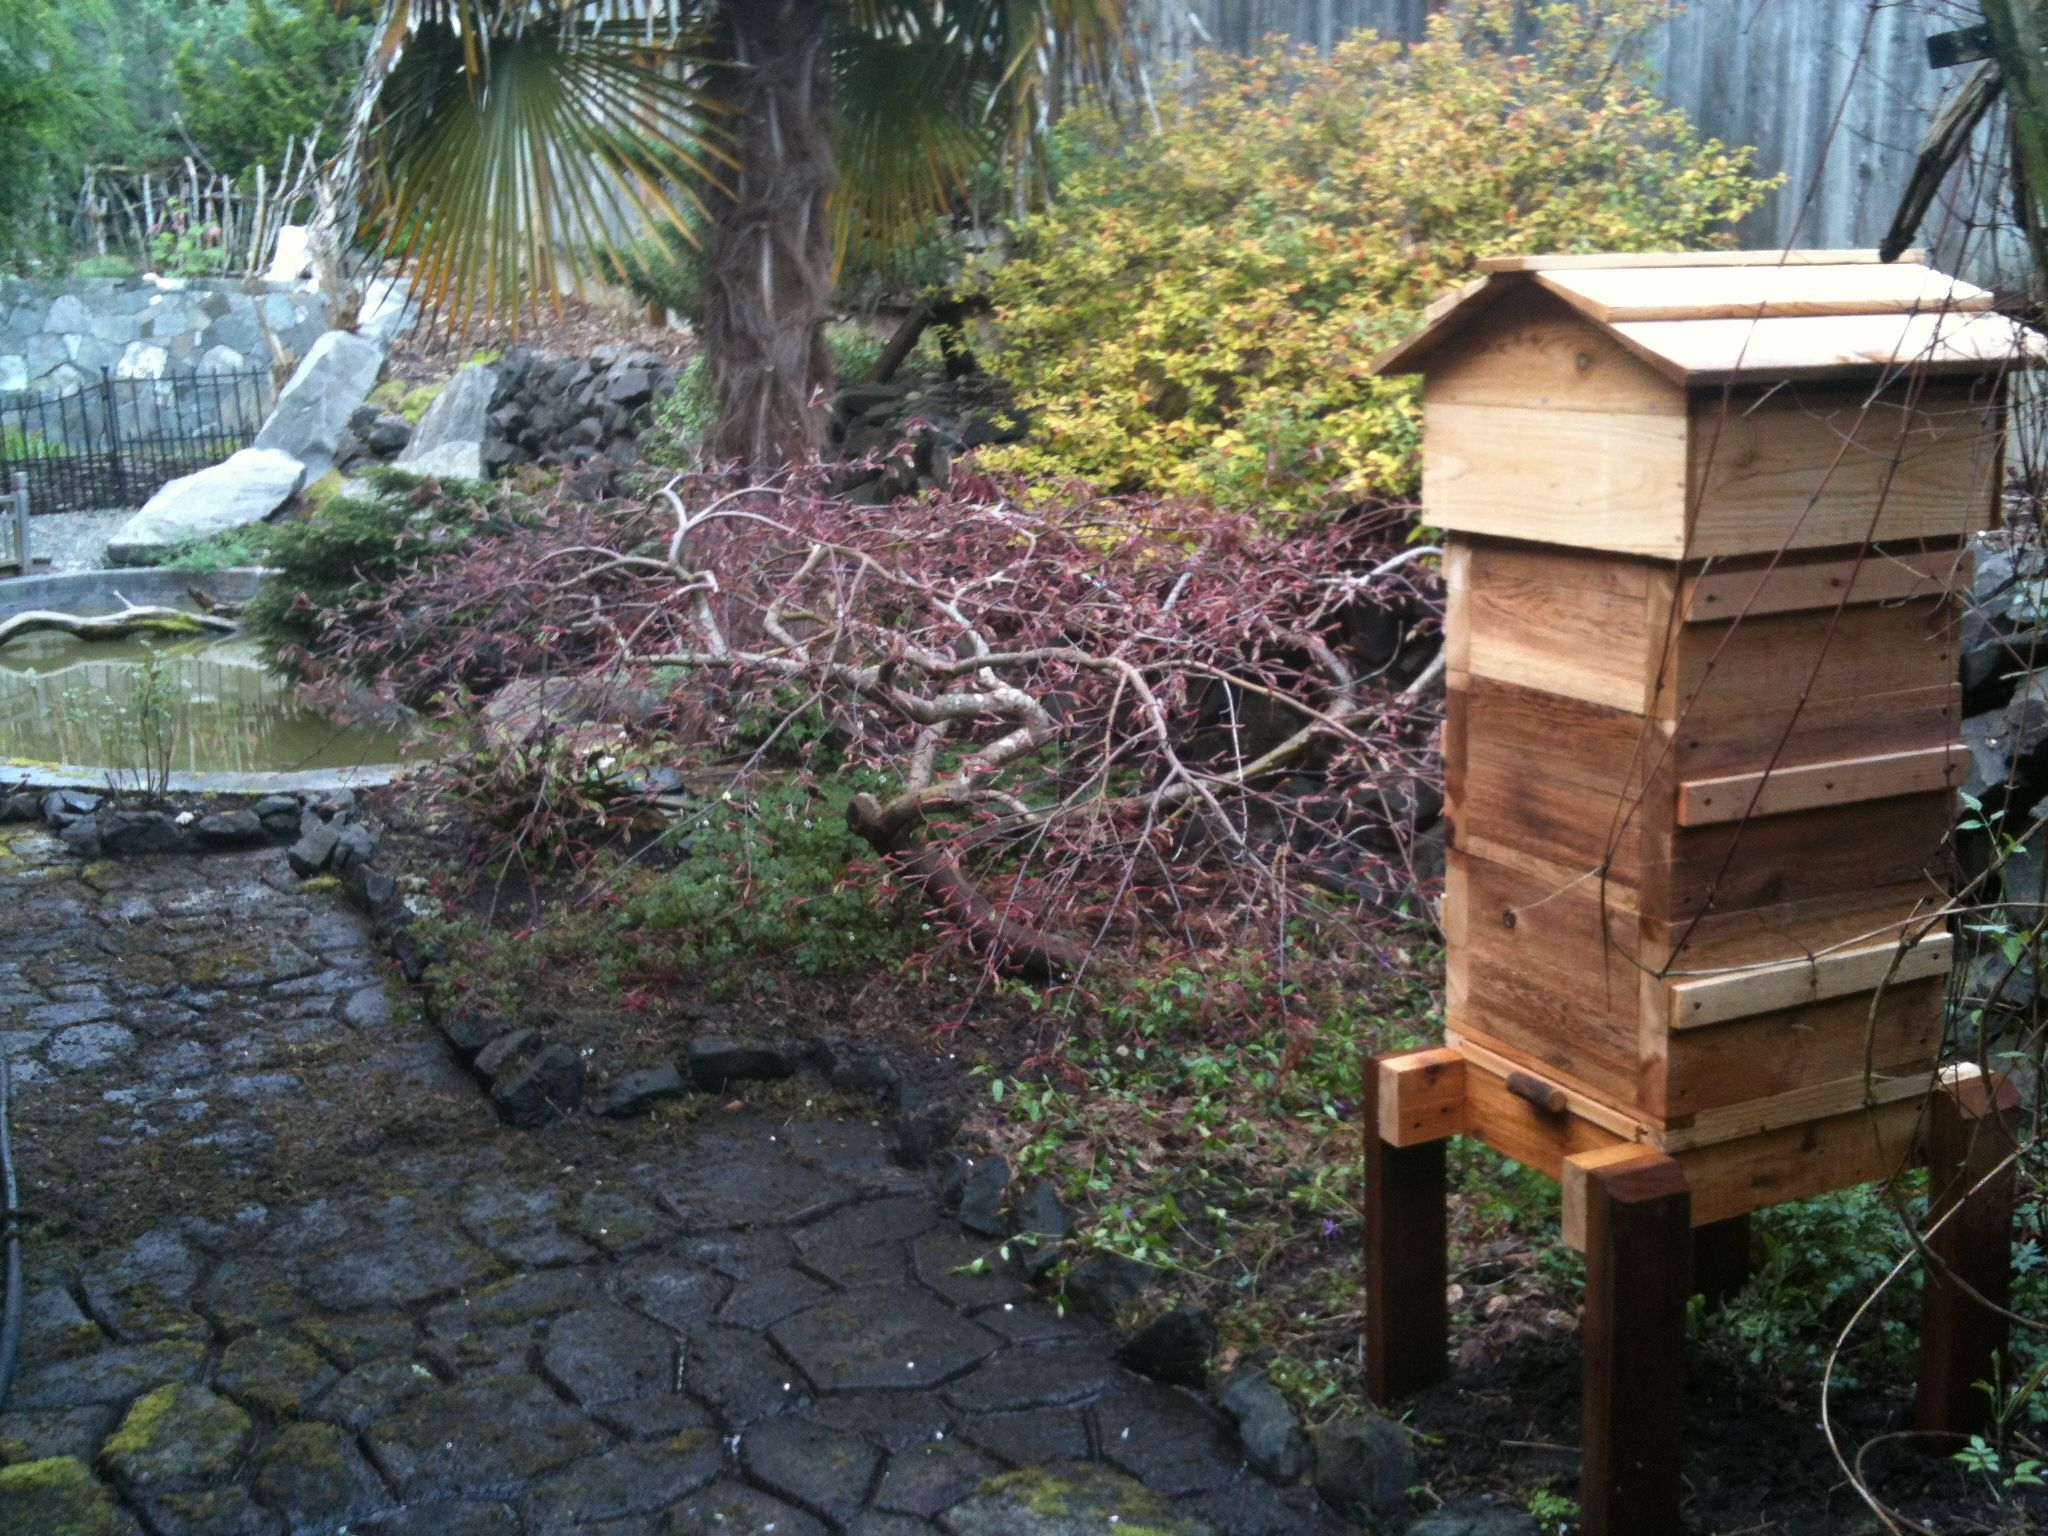 A Warre Hive Garden Bees 28 Images For The Next Swarm Warre Hive Plans Very Detailed Warre